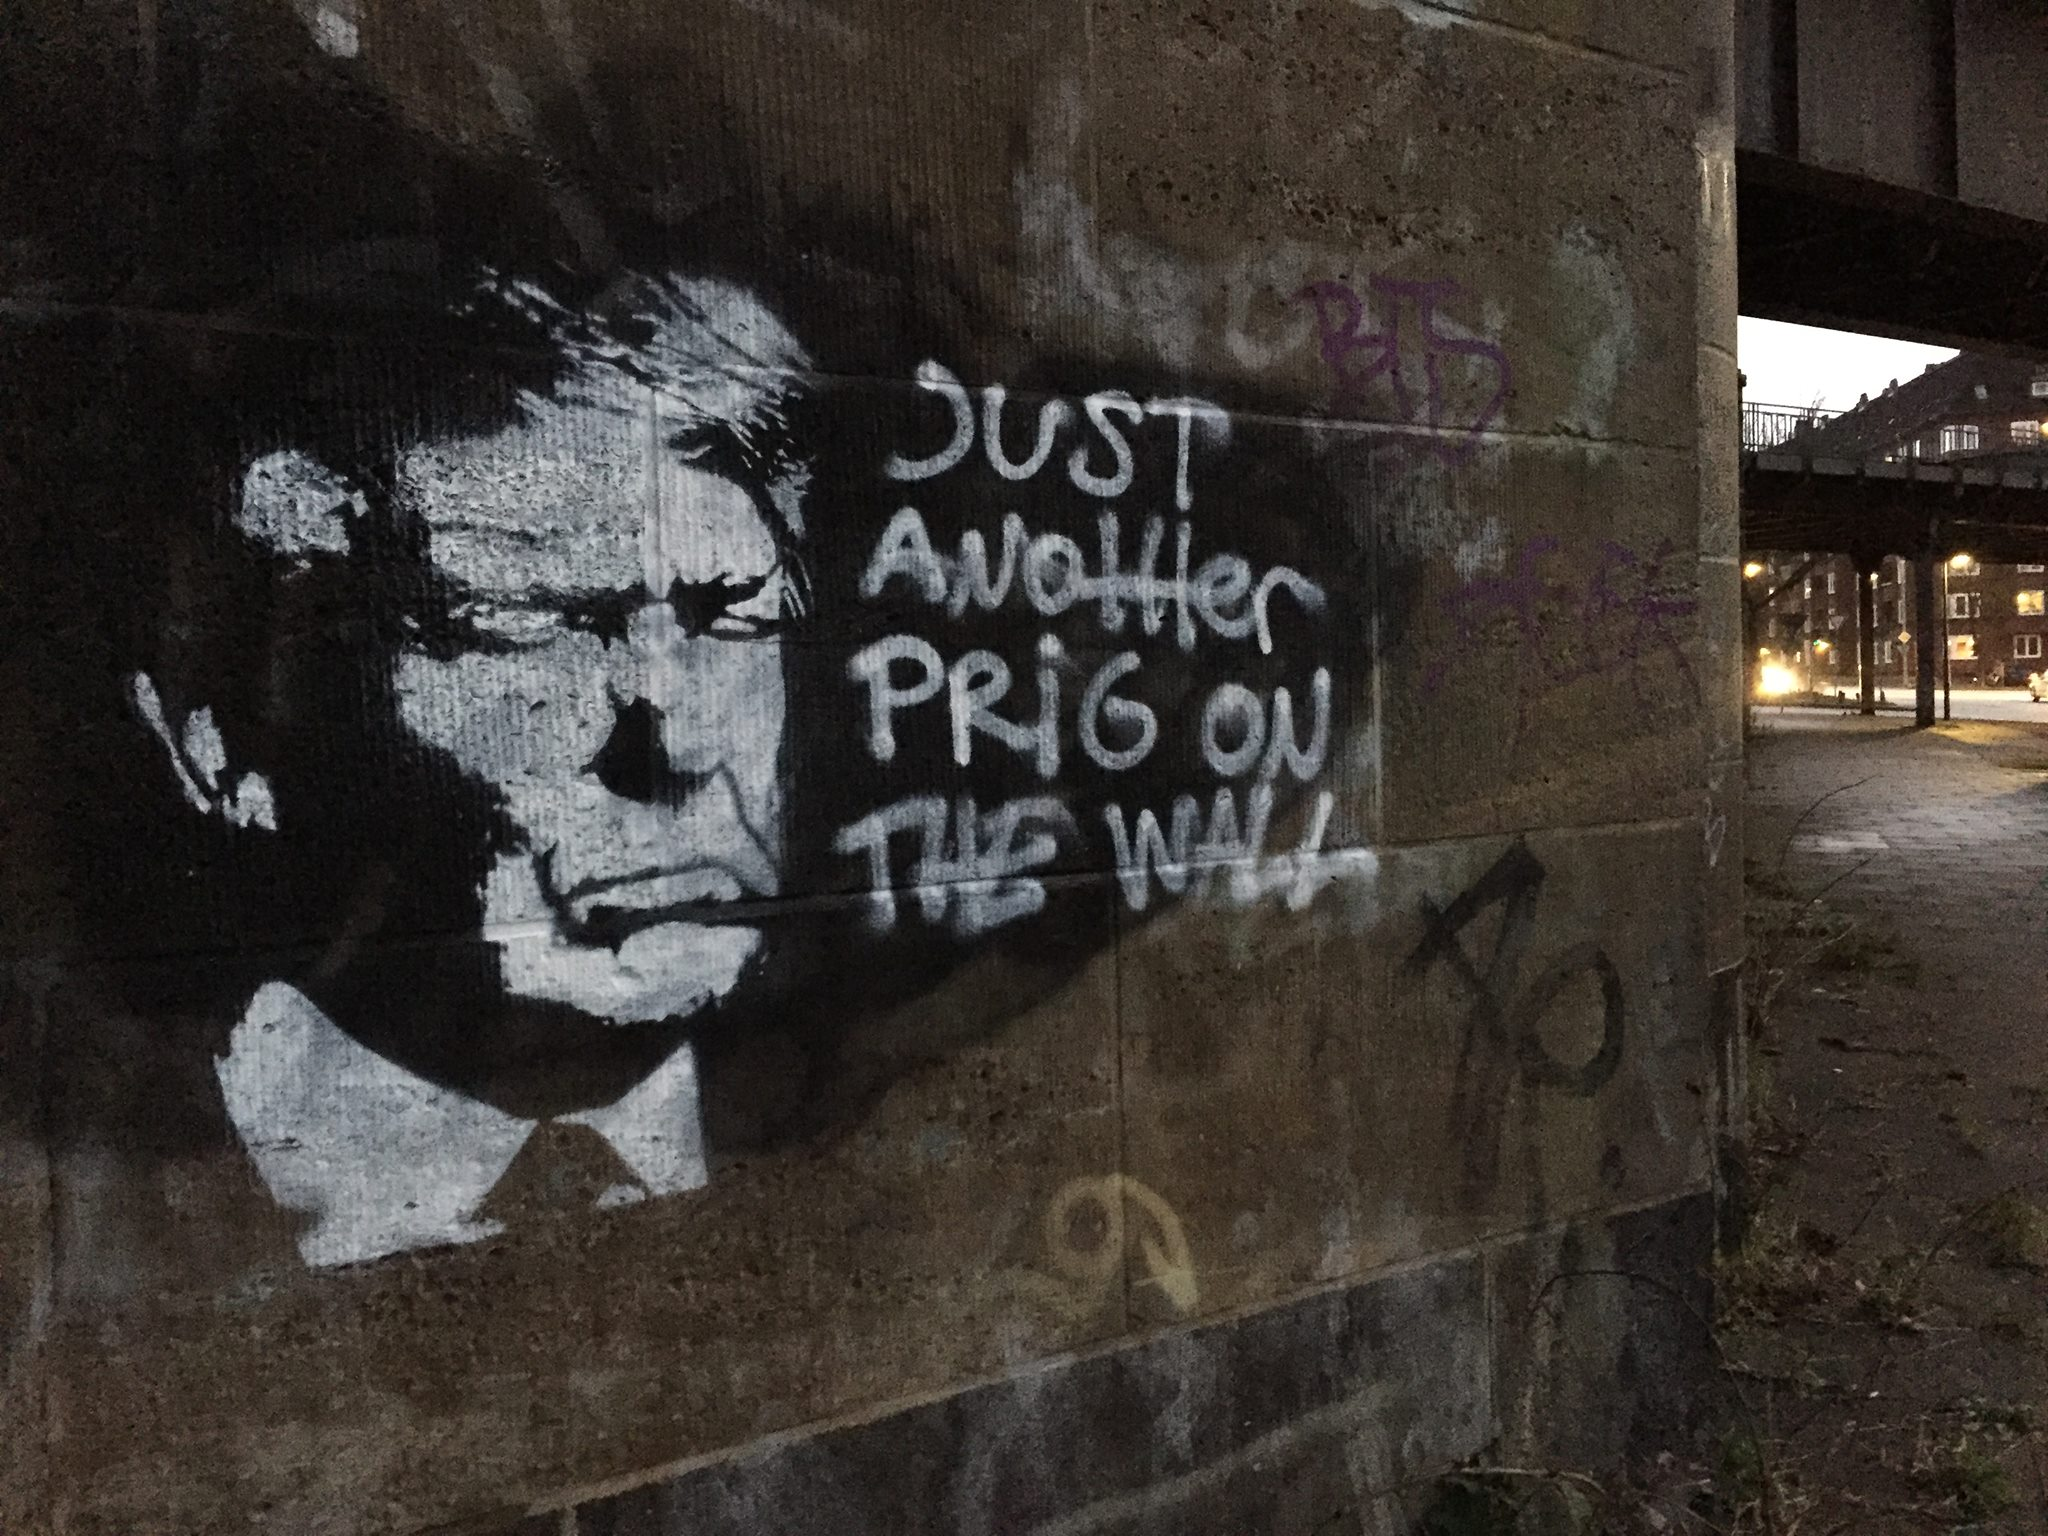 just-another-prig-on-the-wall---neal-trump